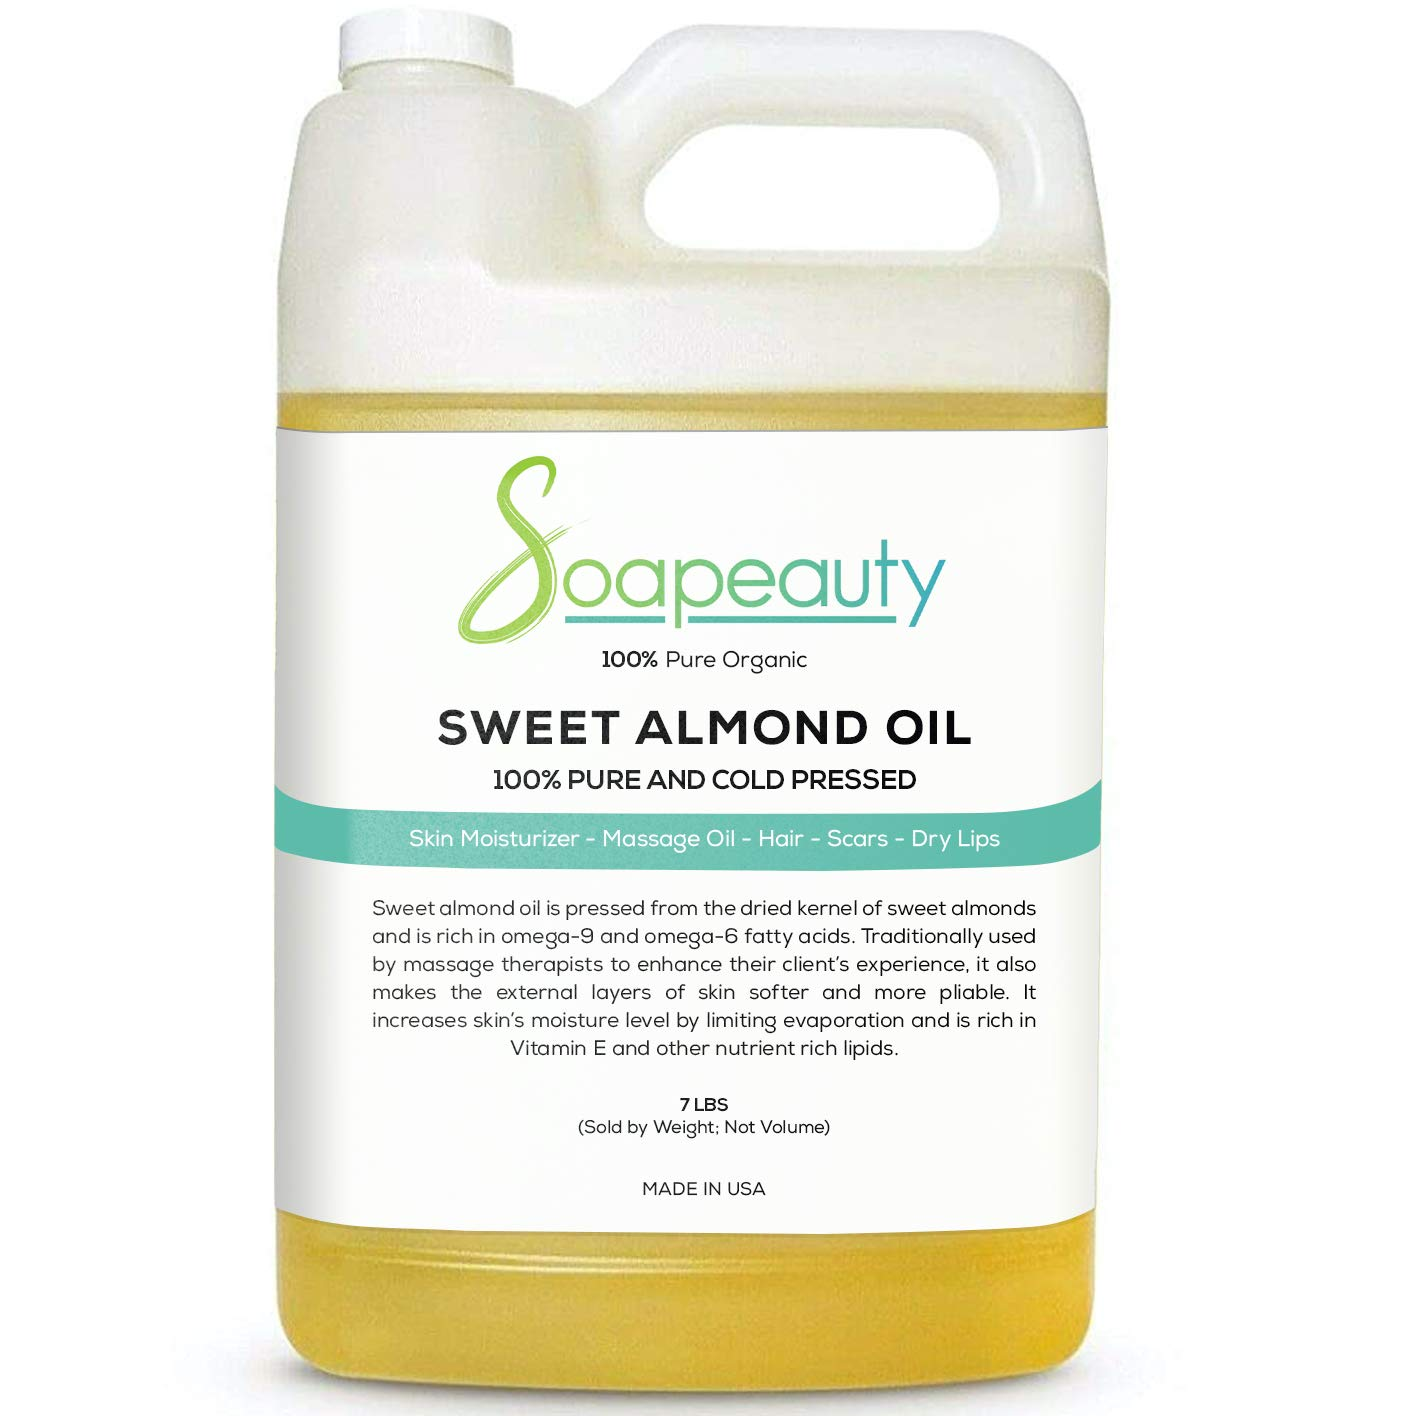 Sweet Almond Oil Organic Cold Pressed Unrefined | 100% Pure Natural Available in Bulk | Carrier Essential Oils, Moisturizer Skin, Face & Hair, Soap Making | Sizes 4OZ to 1 Gallon | (7 LBS/ 1 Gallon)